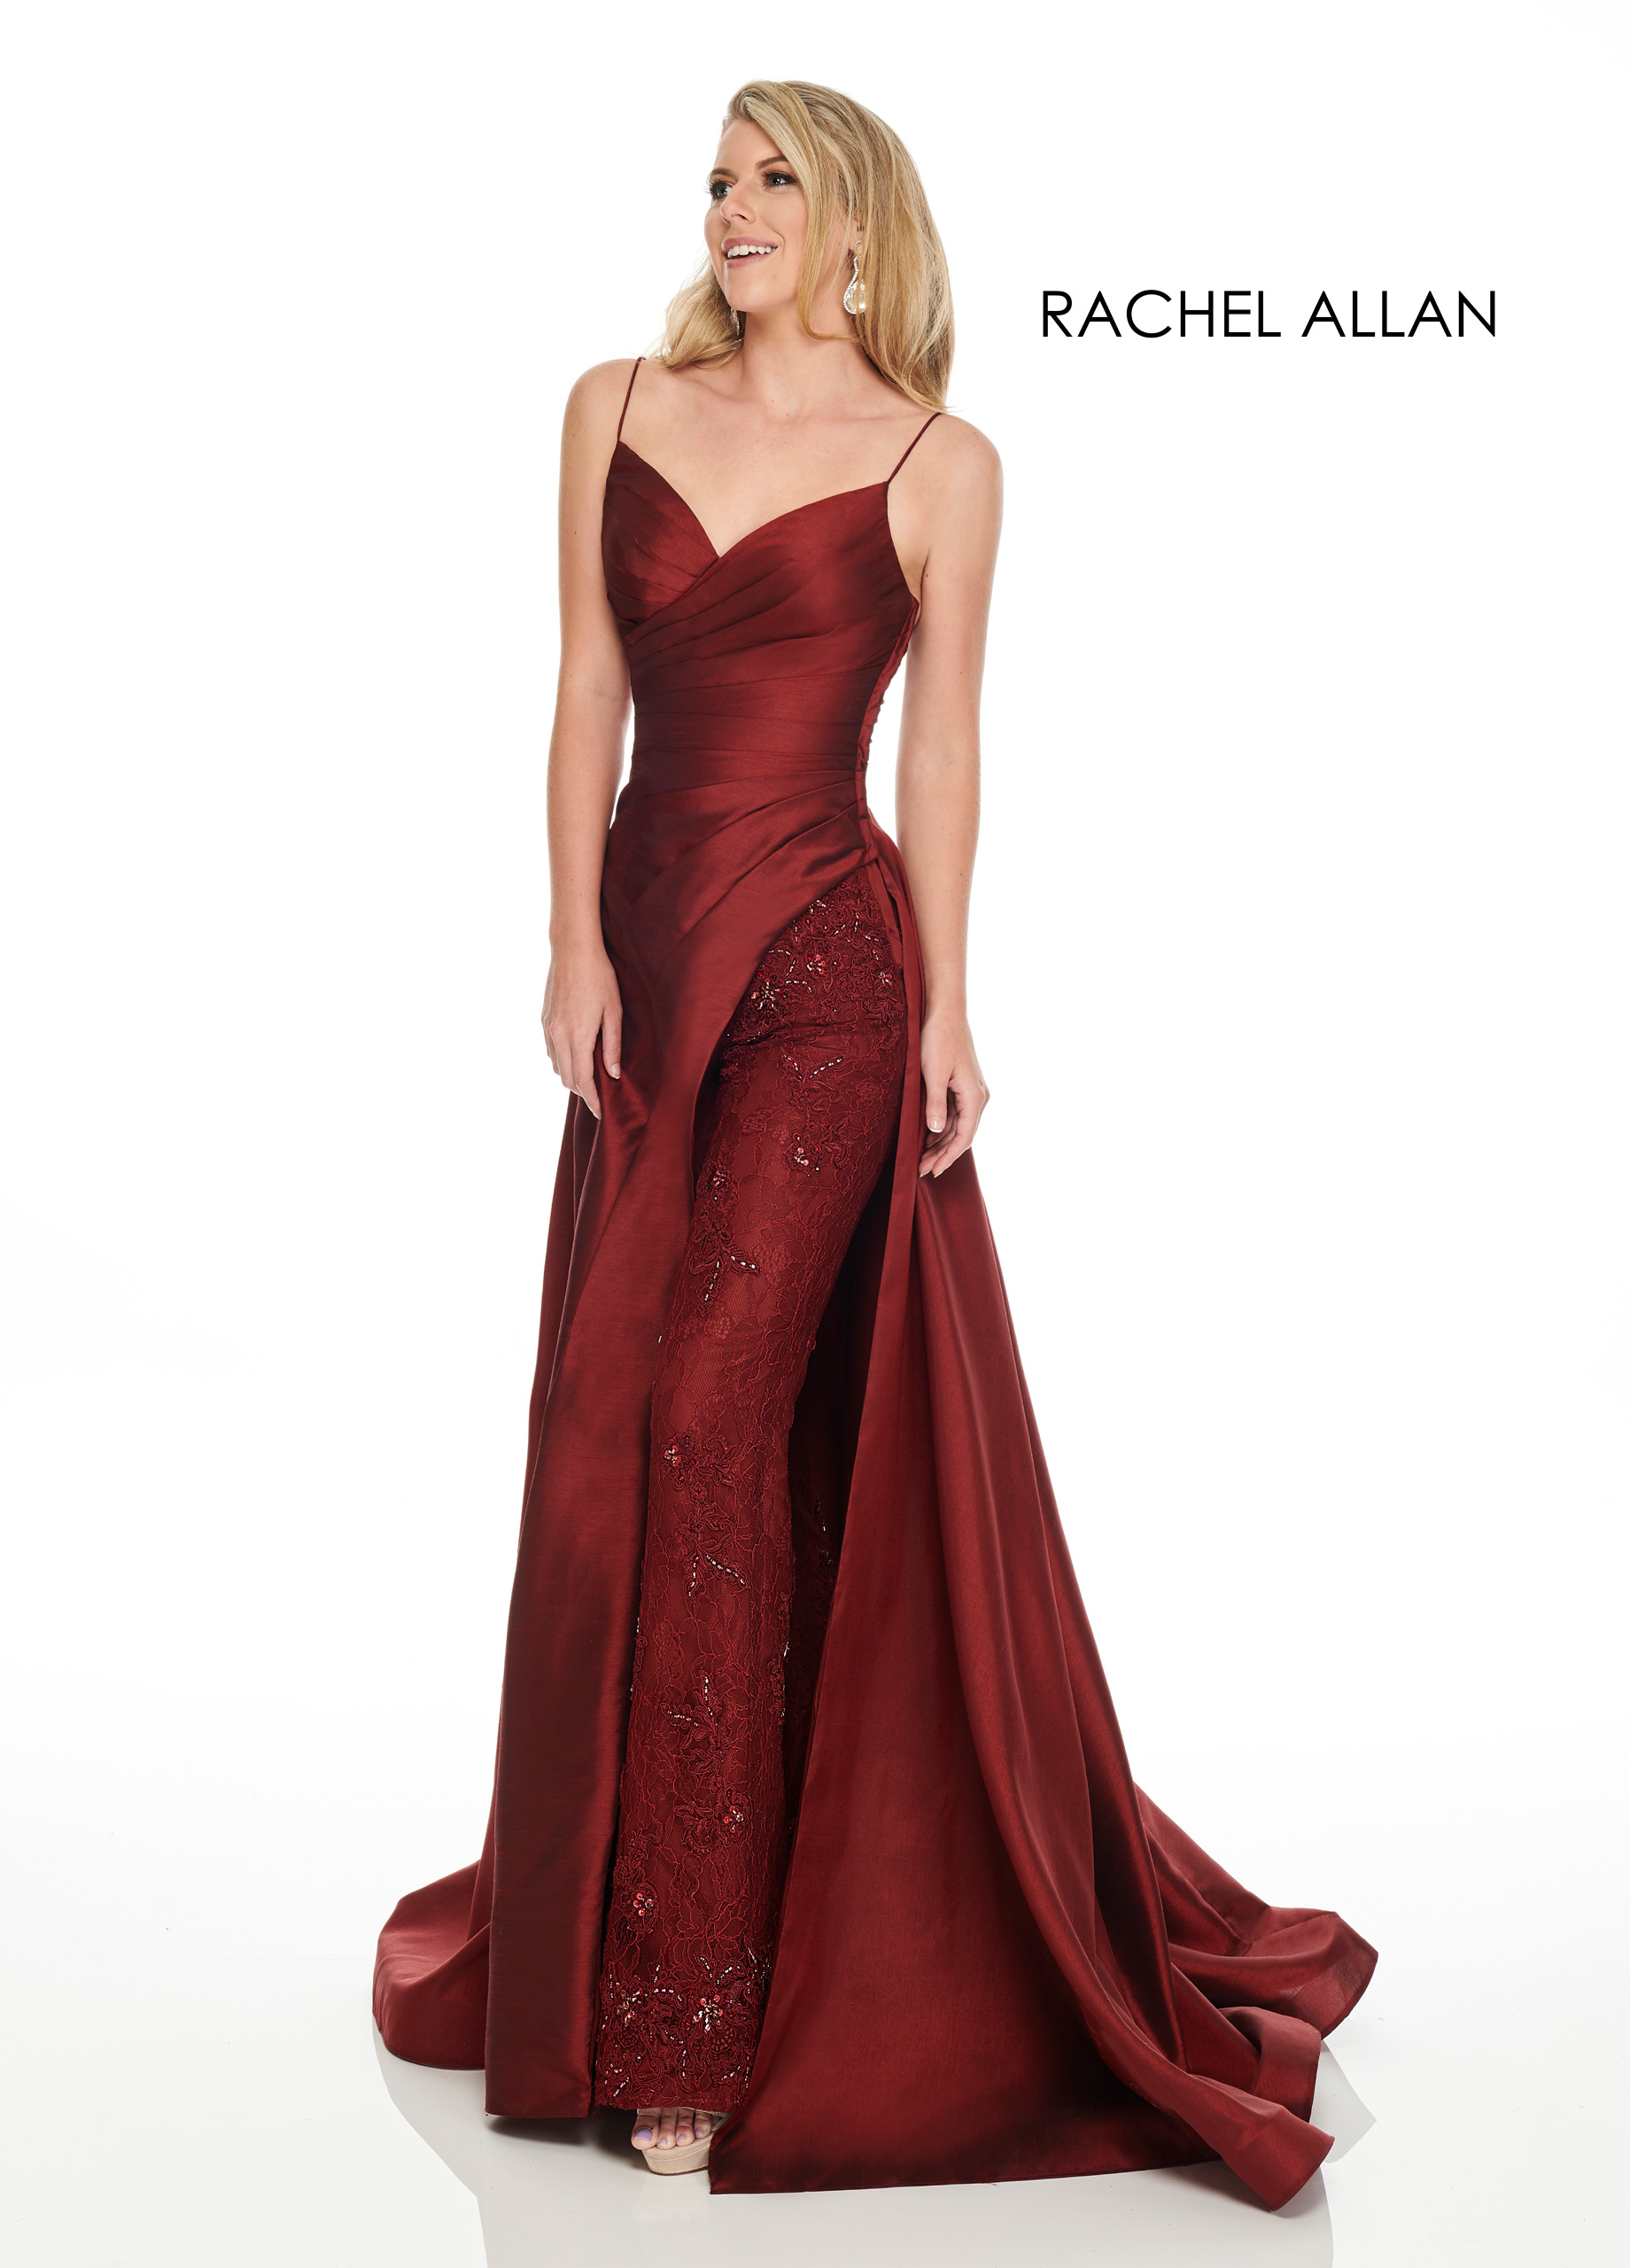 Strappy Skirt With Overlay Couture Dresses in Red Color